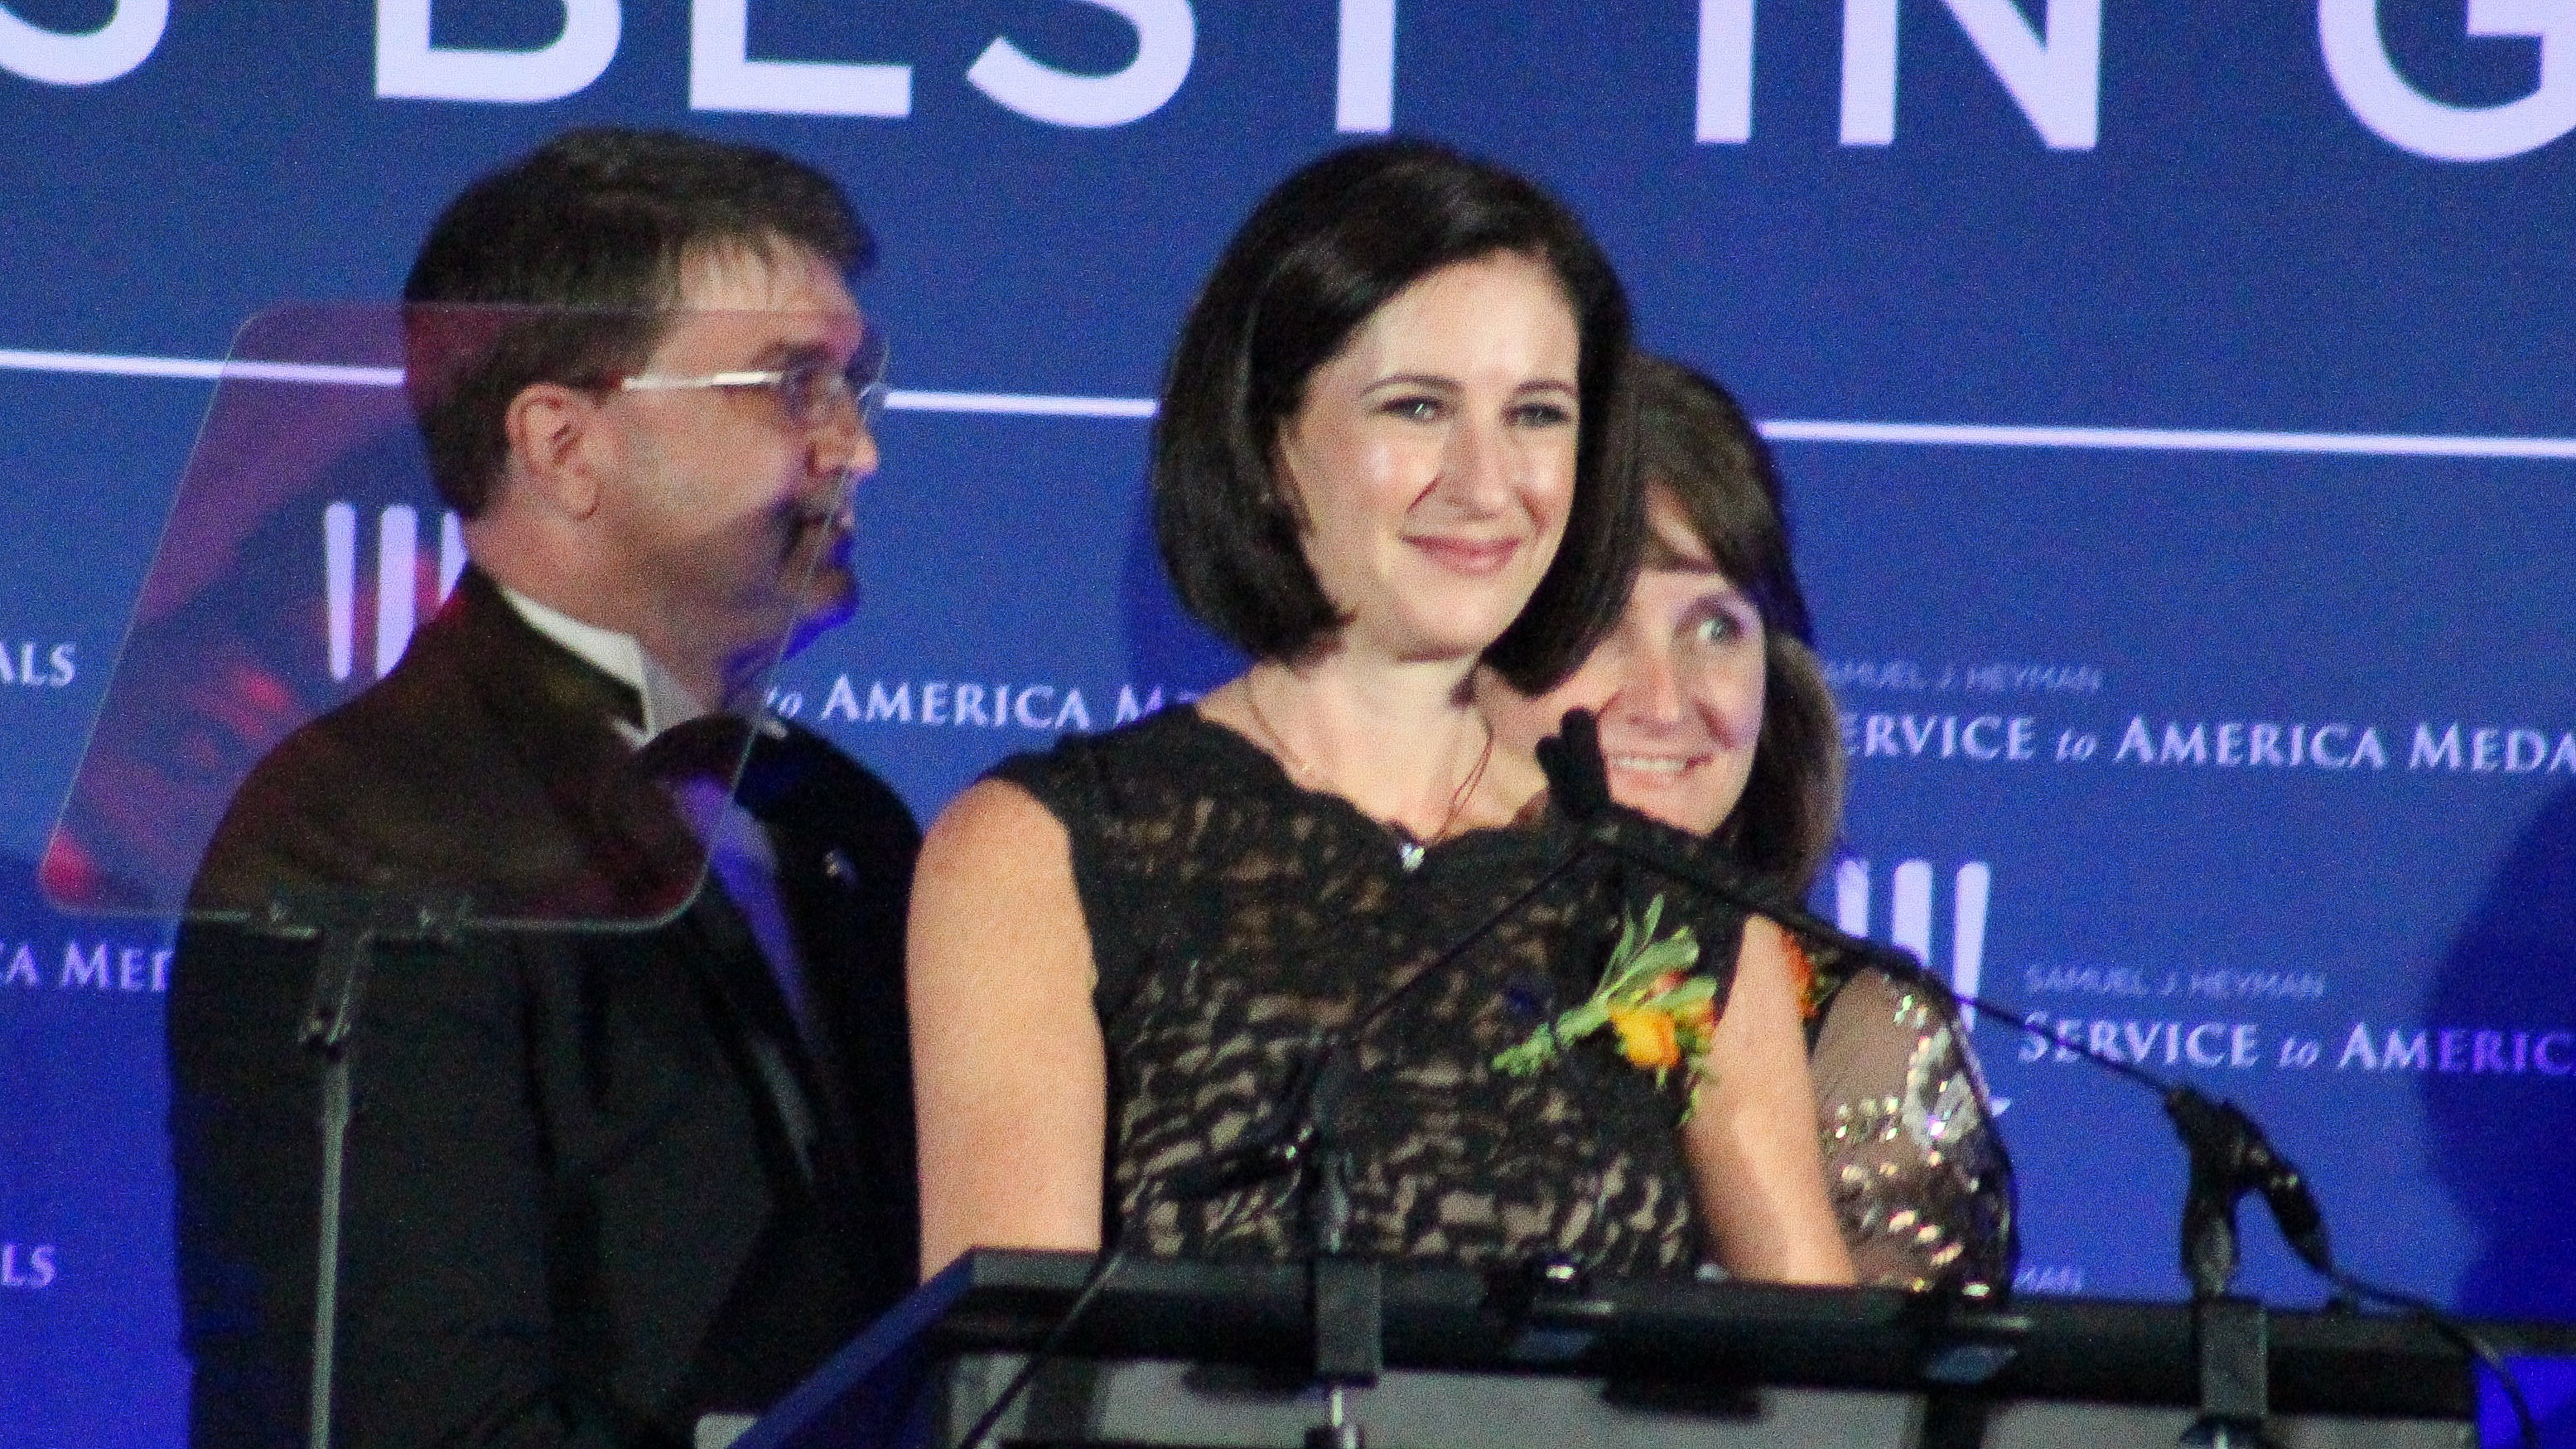 Marcella Jacobs, director of Digital Service at the Department of Veterans Affairs accepts the Management Excellence Medal at the 2018 Sammies Gala. (Jessie Bur/Staff)